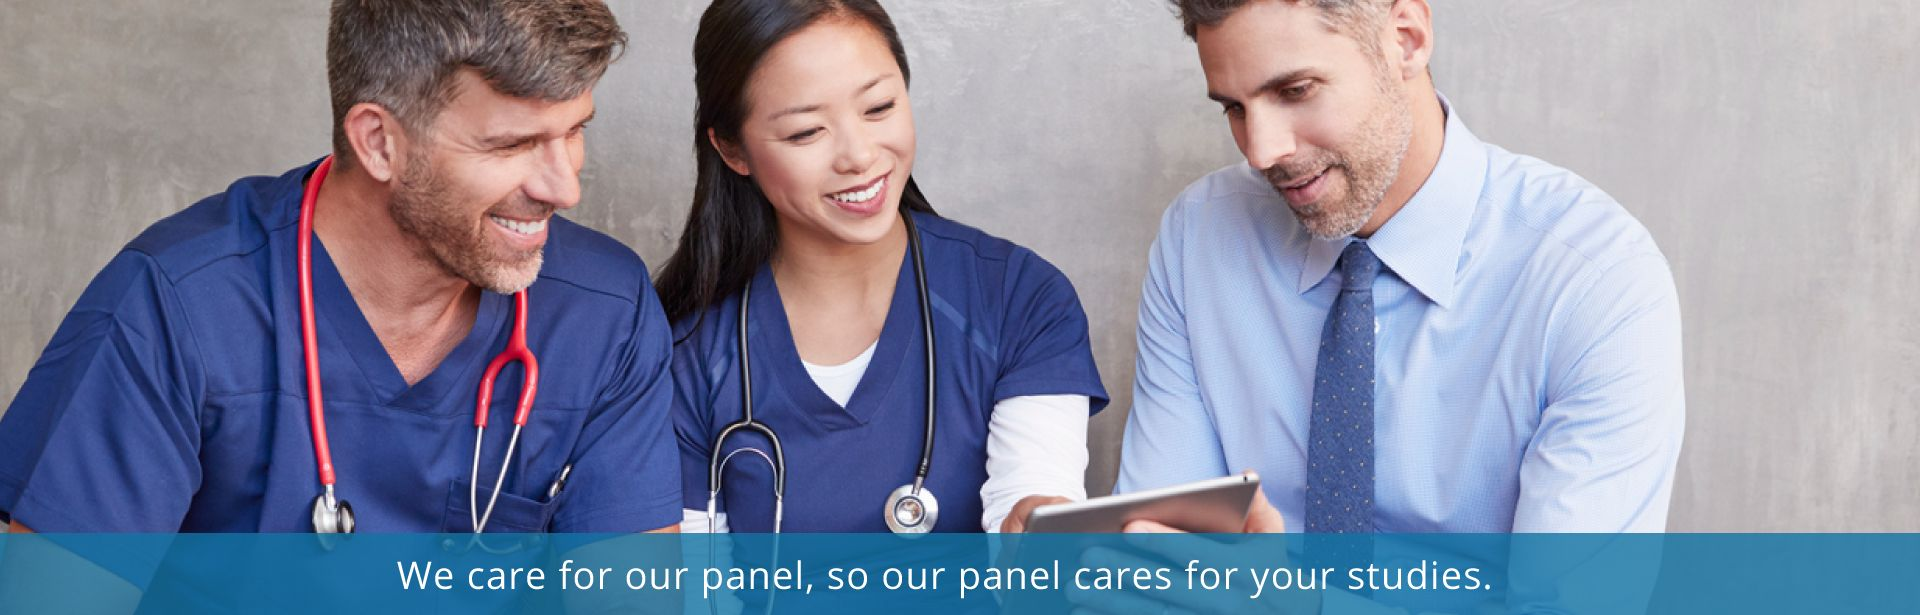 We care for our panel, so our panel cares for your studies.